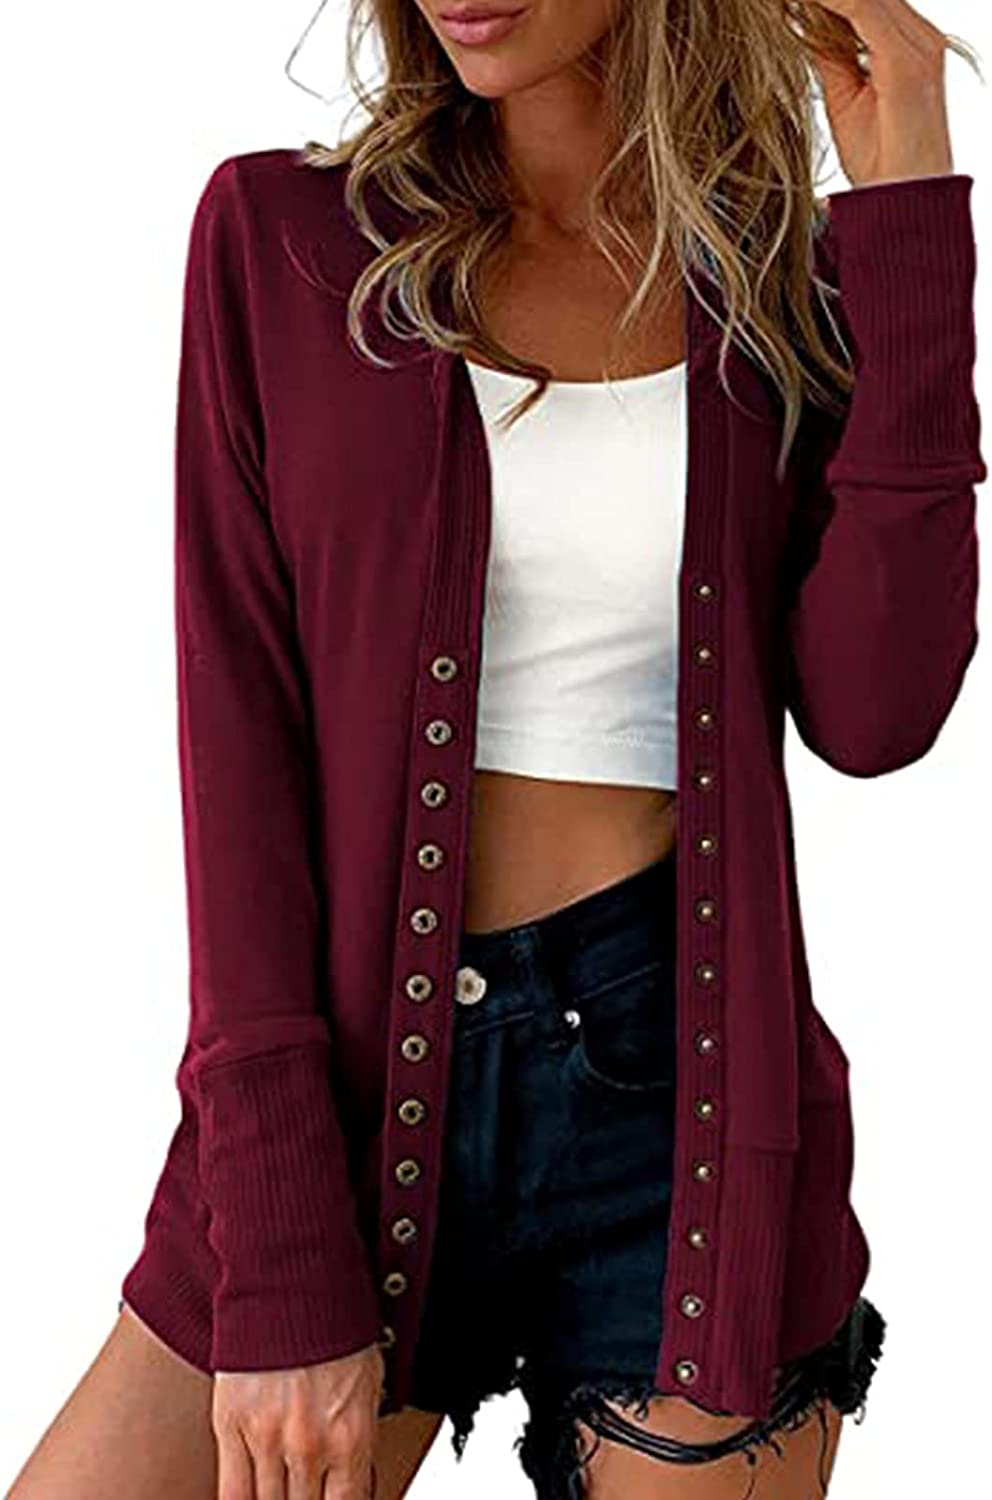 Hemlock Women Button Down Cardigans Thin Fall Coat Long Sleeve Sweater Cardigan Tops Solid Color Slim Outwears